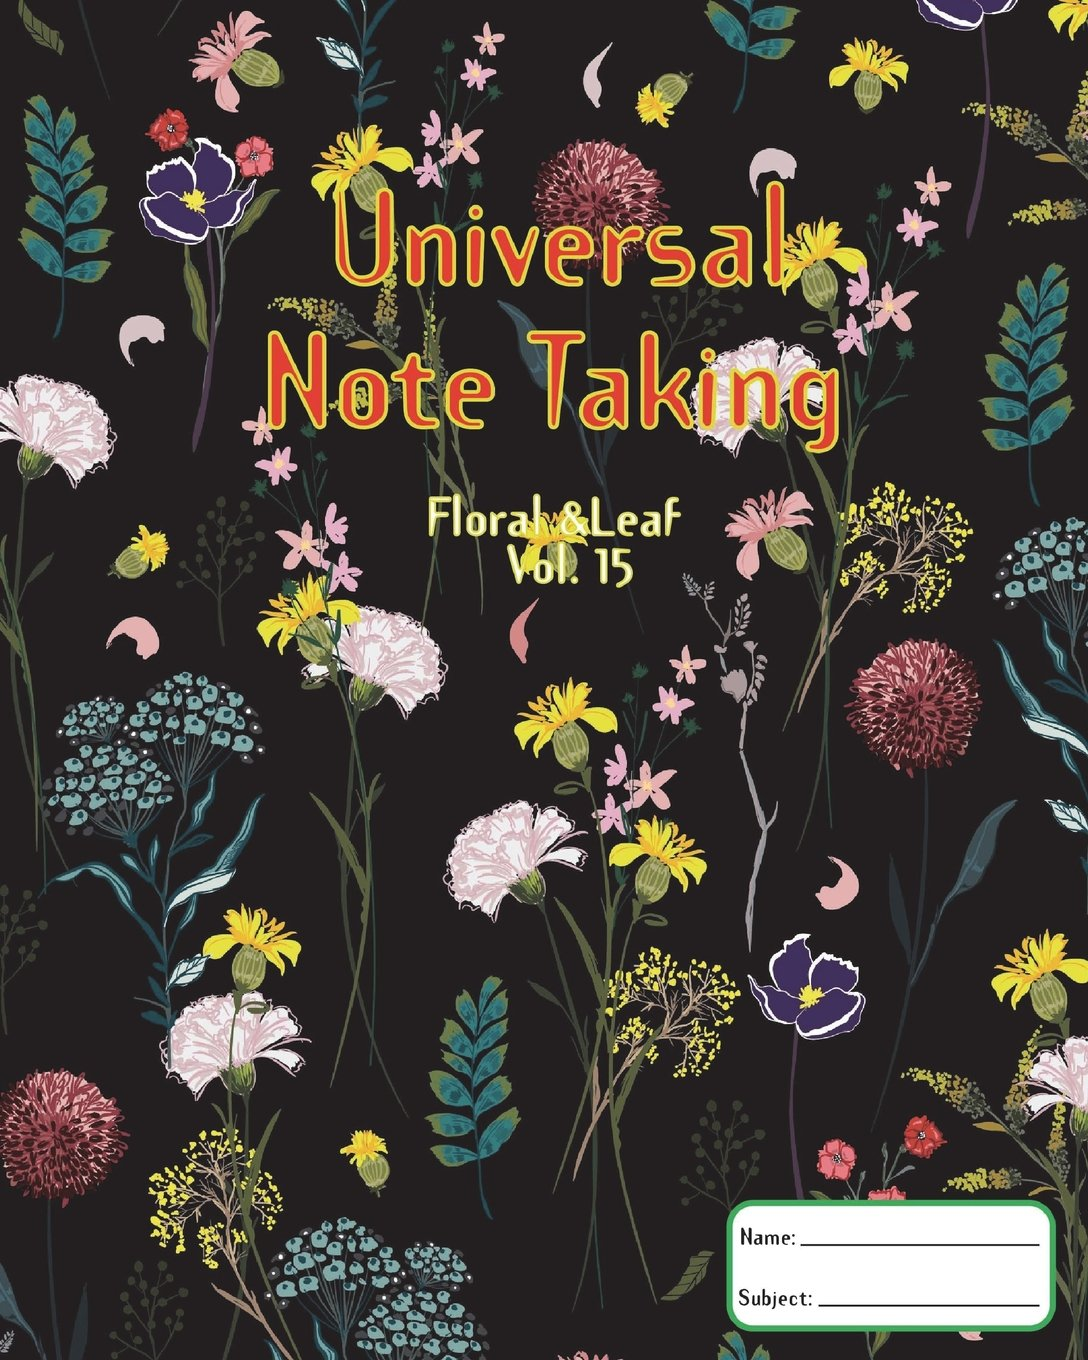 Download Universal Note Taking: Cornell Notes; Volume 15 of floral &leaf series, Note taking notebook,120 Pages(60 Sheets), 8 x 10 Inch, Key Points, Notes and Summary area pdf